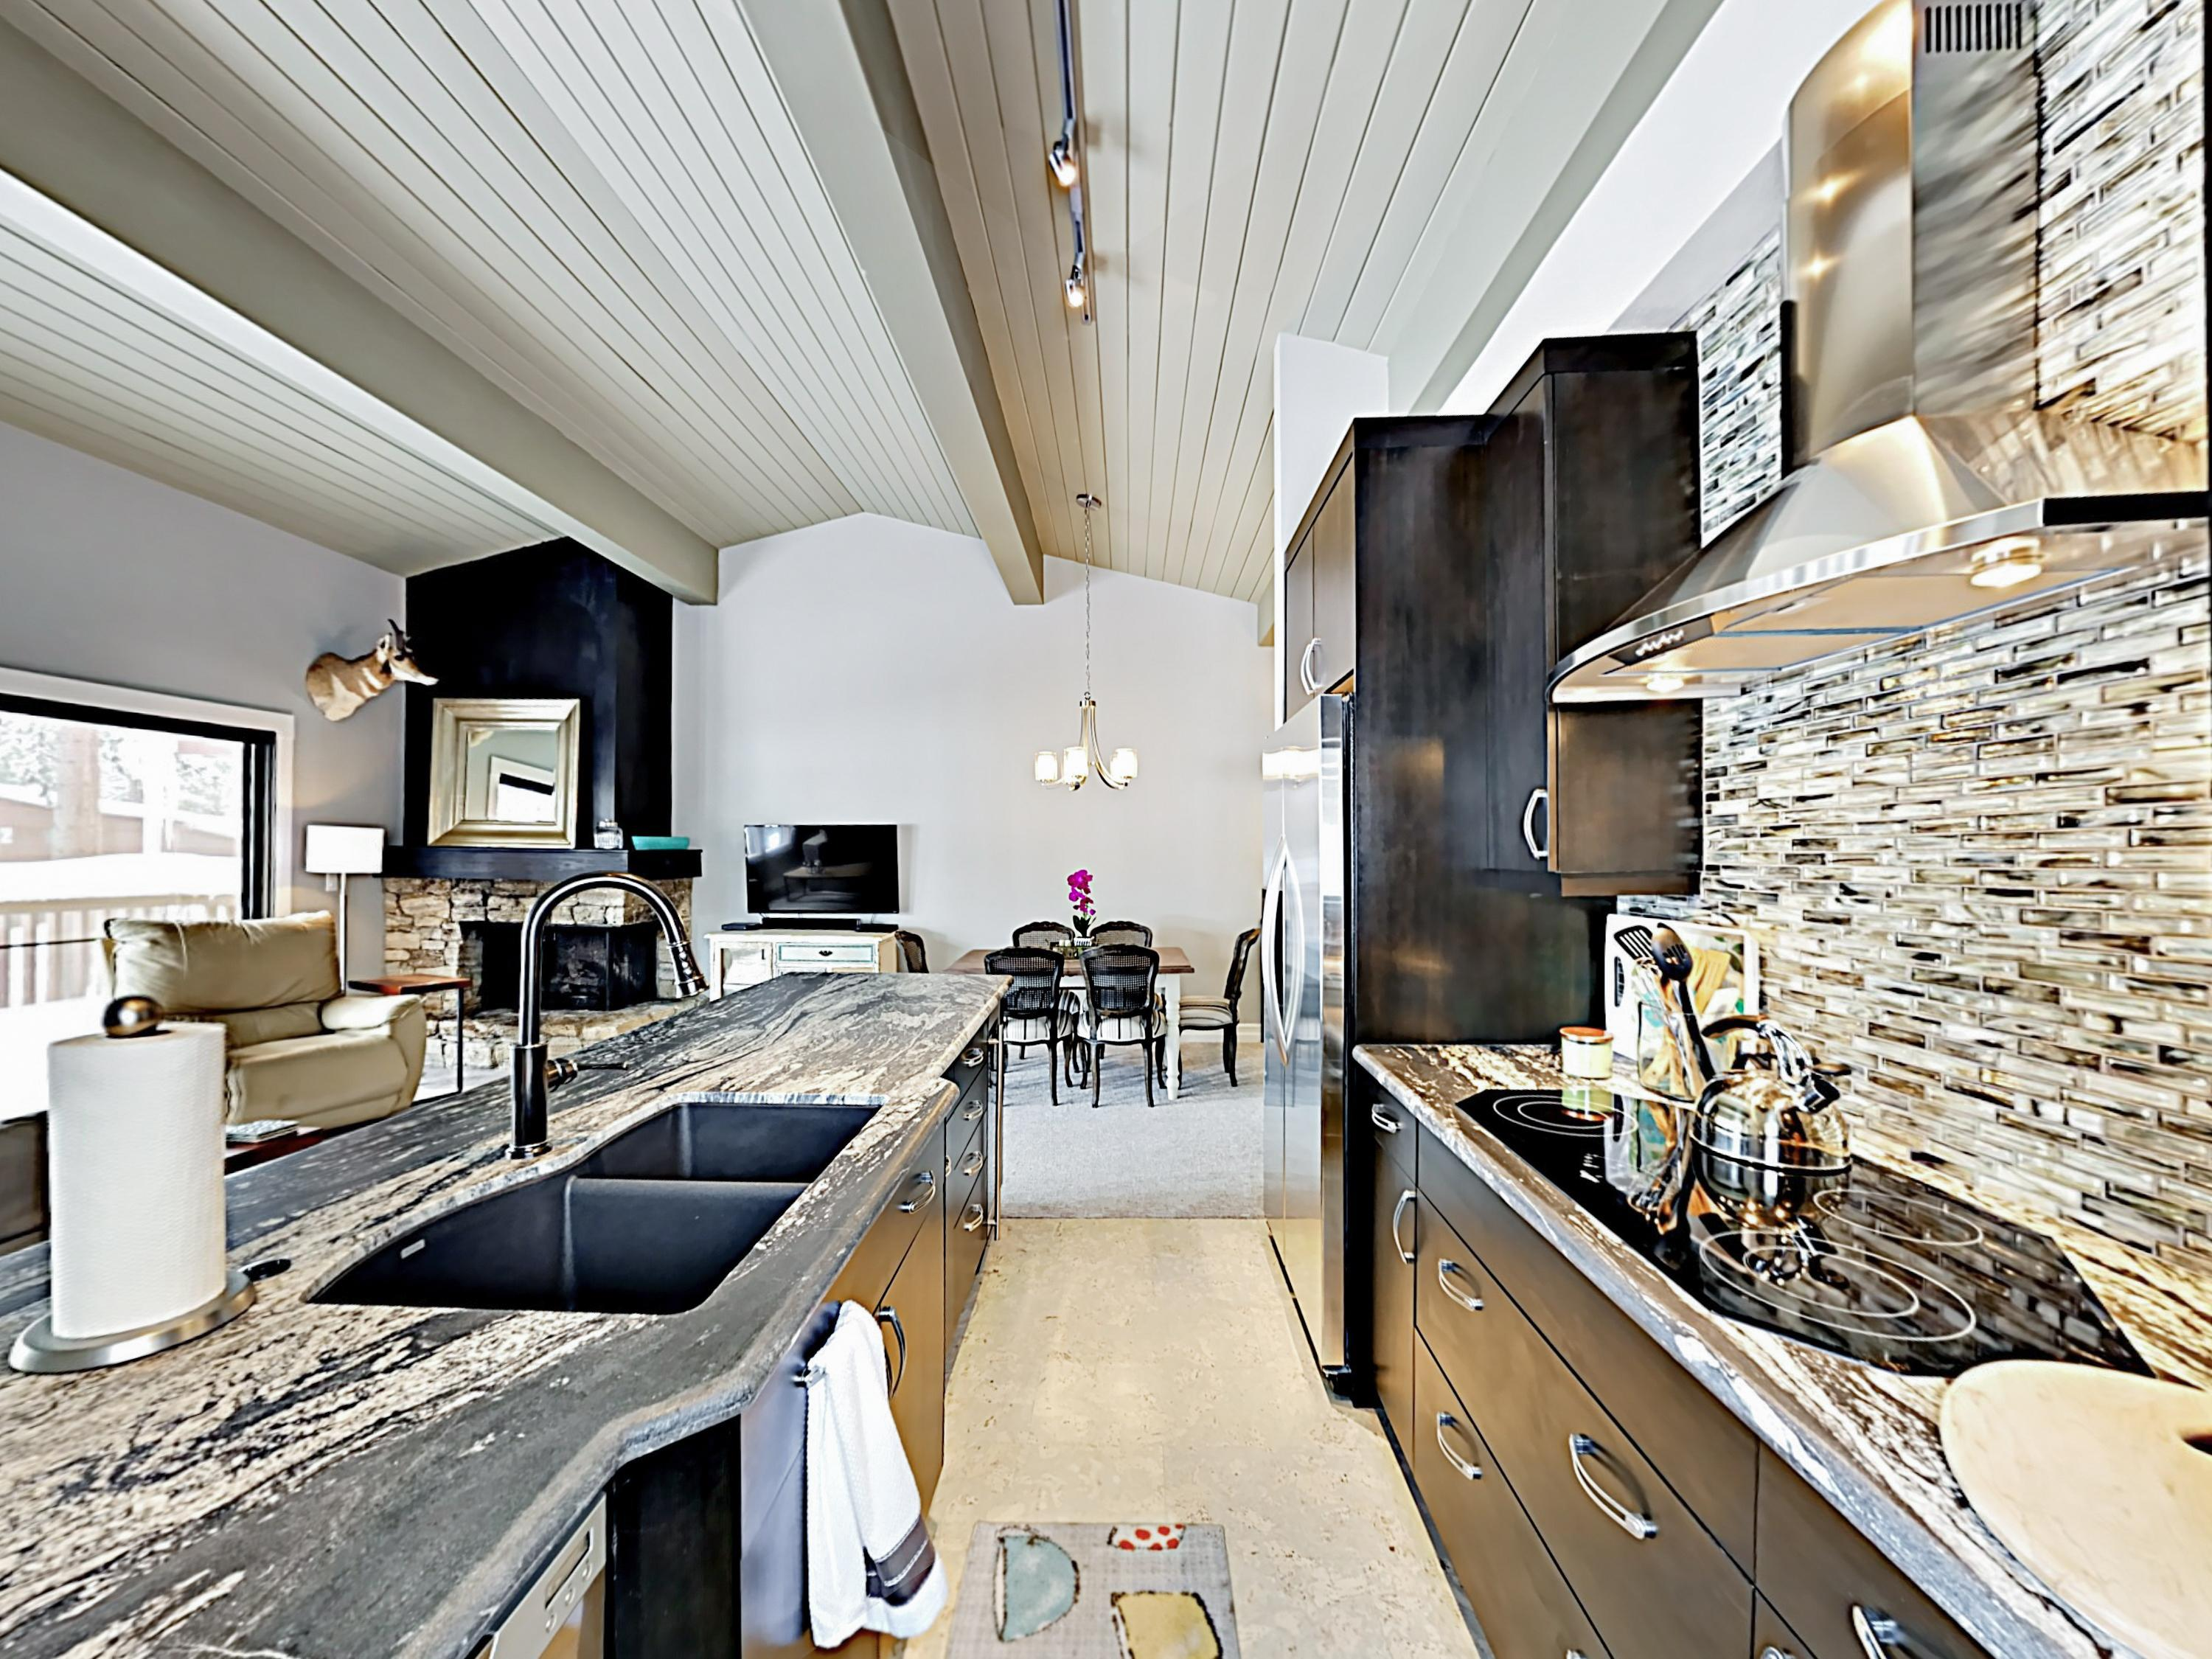 The modern kitchen is outfitted with a full suite of stainless steel appliances, a stylish tile backsplash, and granite countertops.